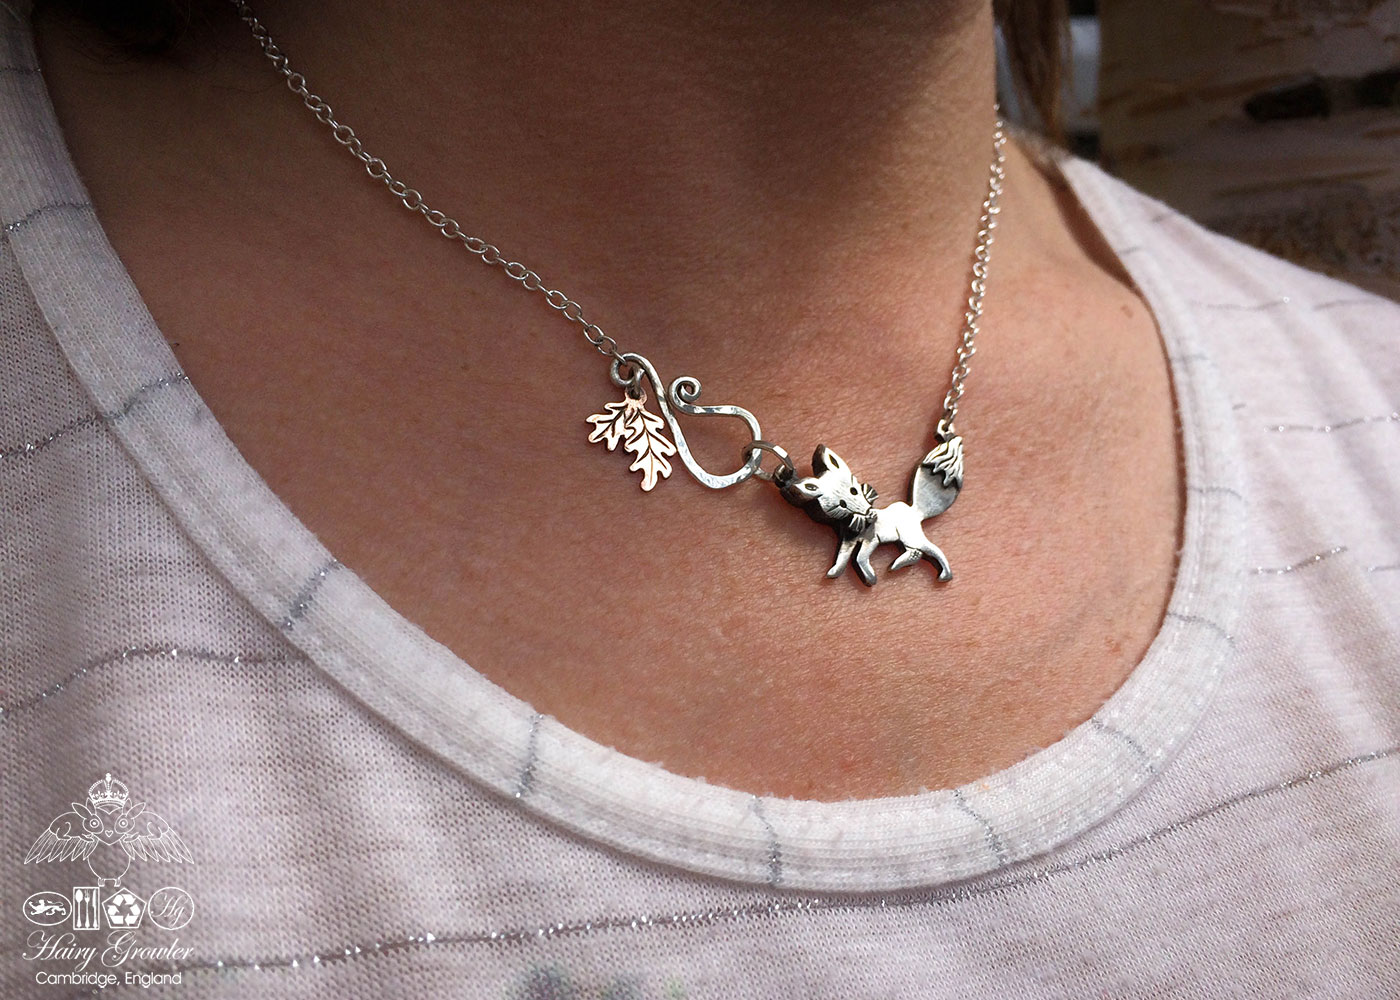 Handmade and upcycled silver curious fox necklace made from silver coins